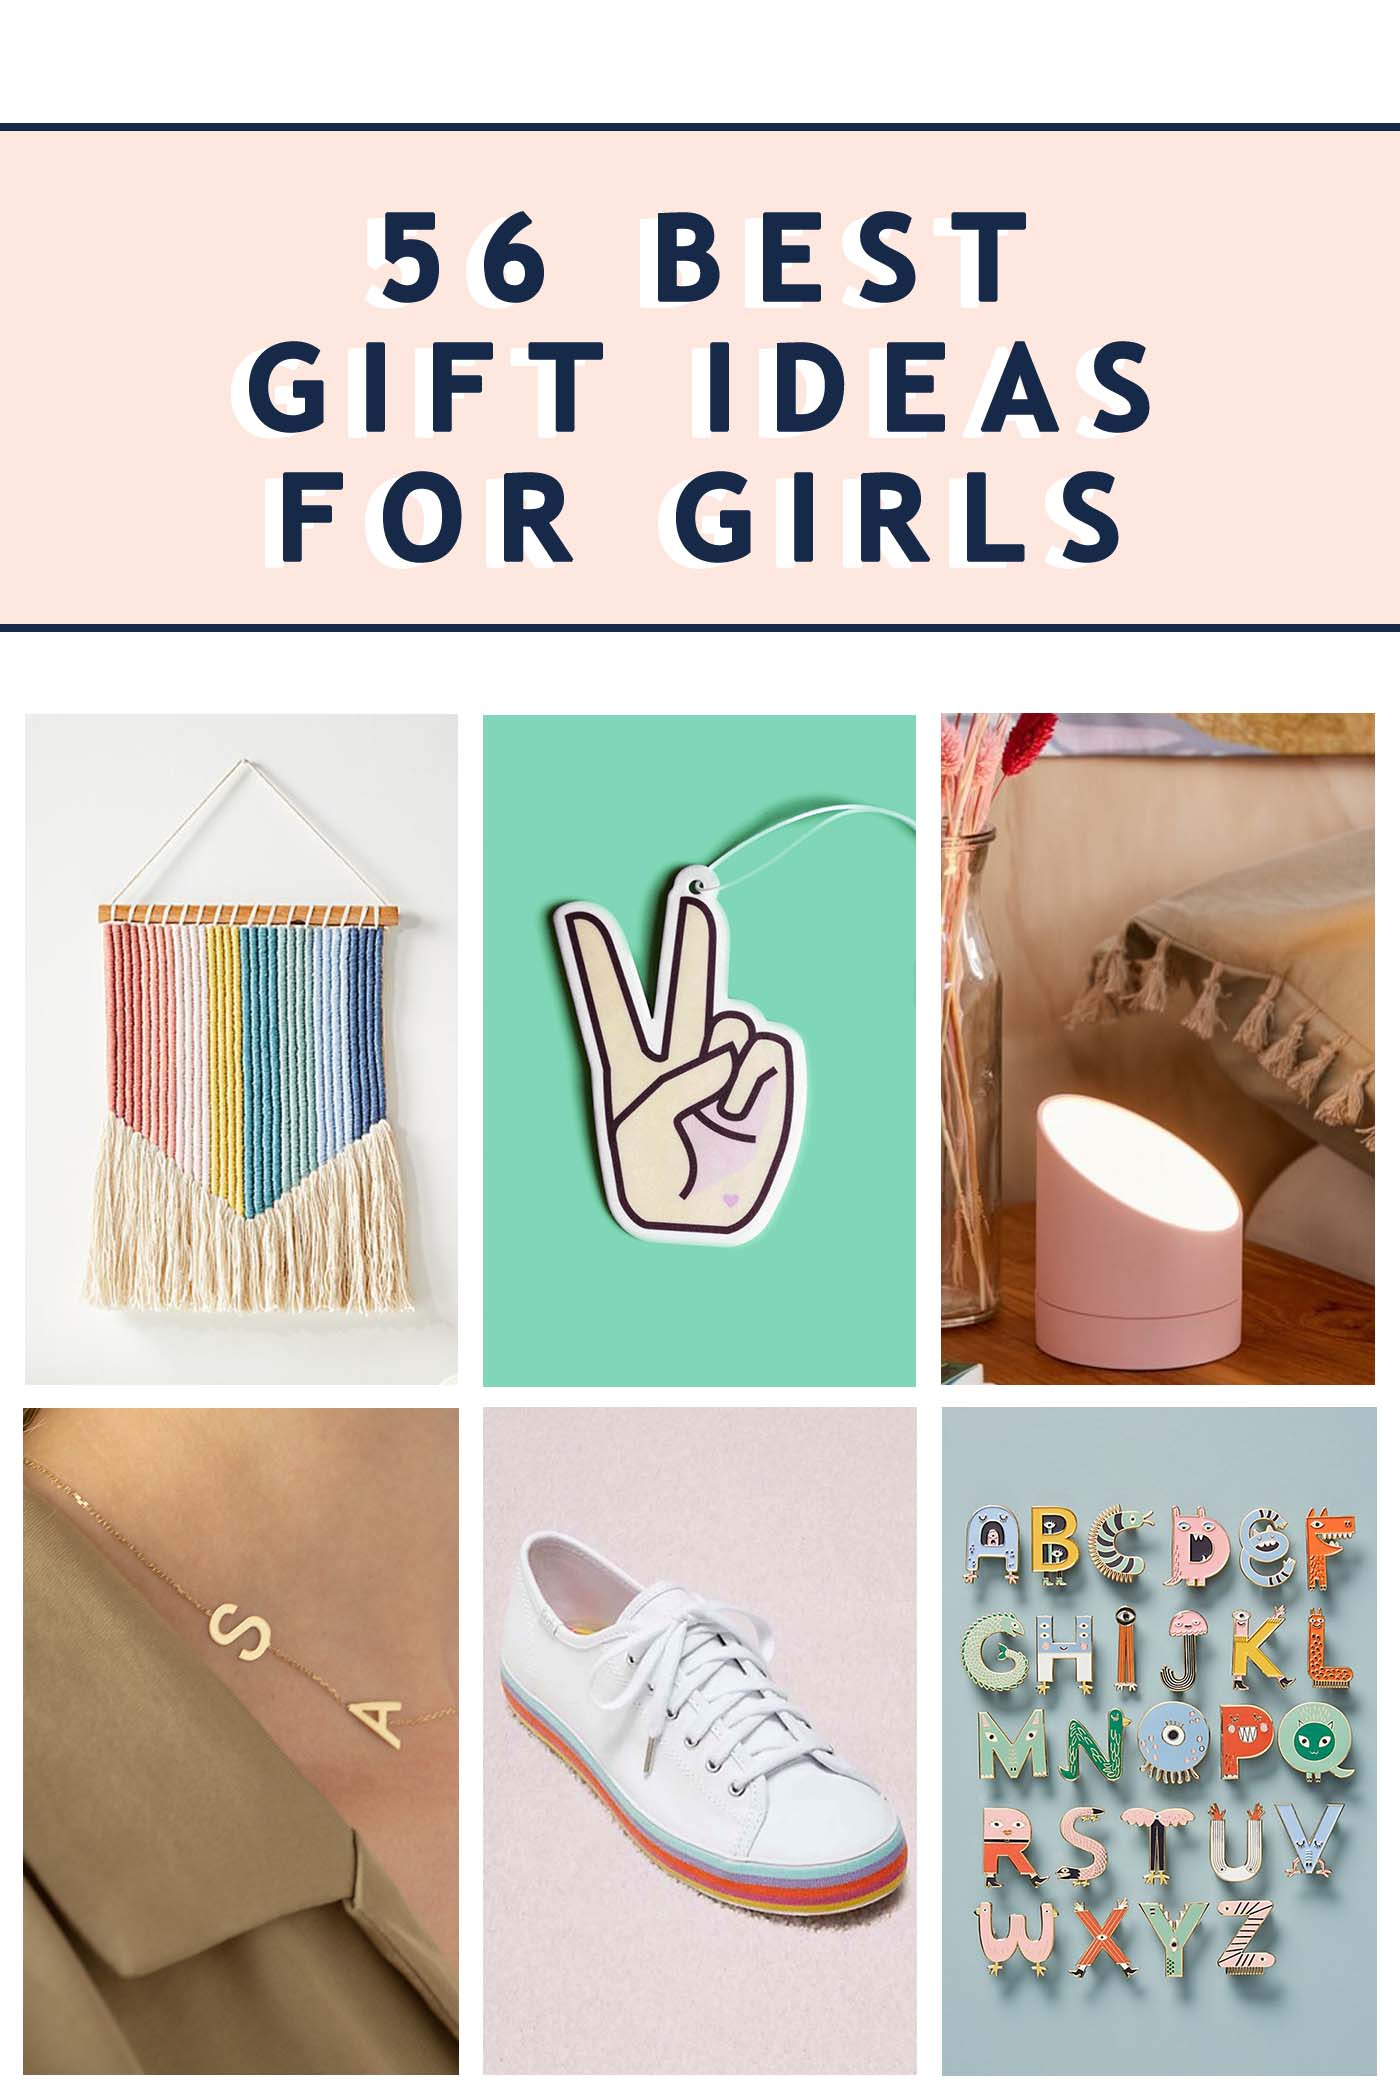 Gifts for Girls: 56 Best Gift Ideas for Girls - Sugar & Cloth